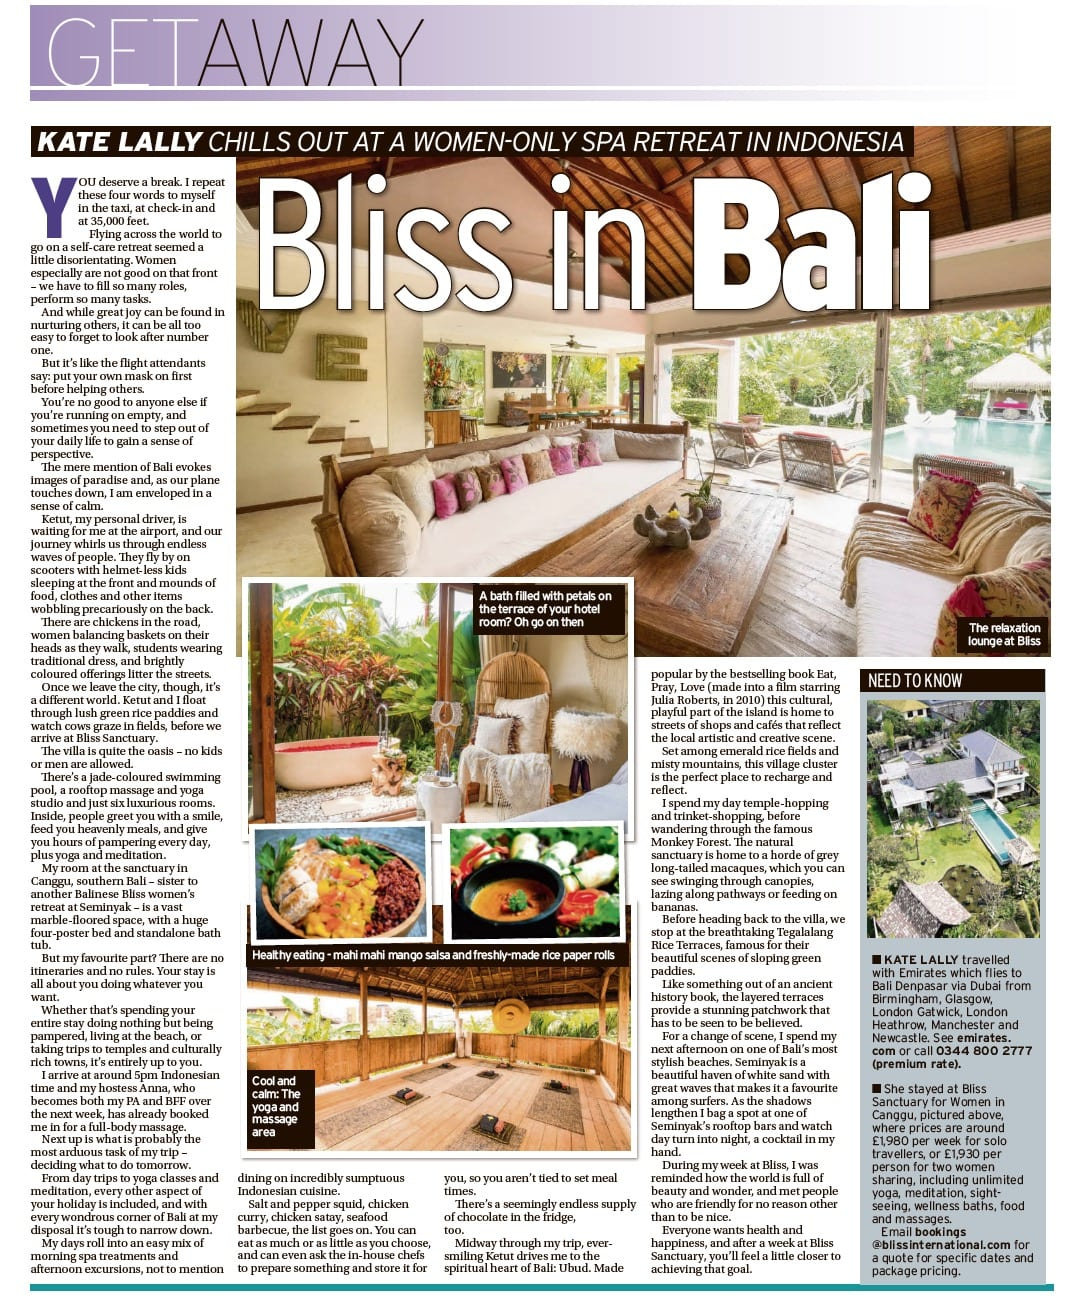 Bliss in Bali – Courier Getaway - Bliss Sanctuary For Women